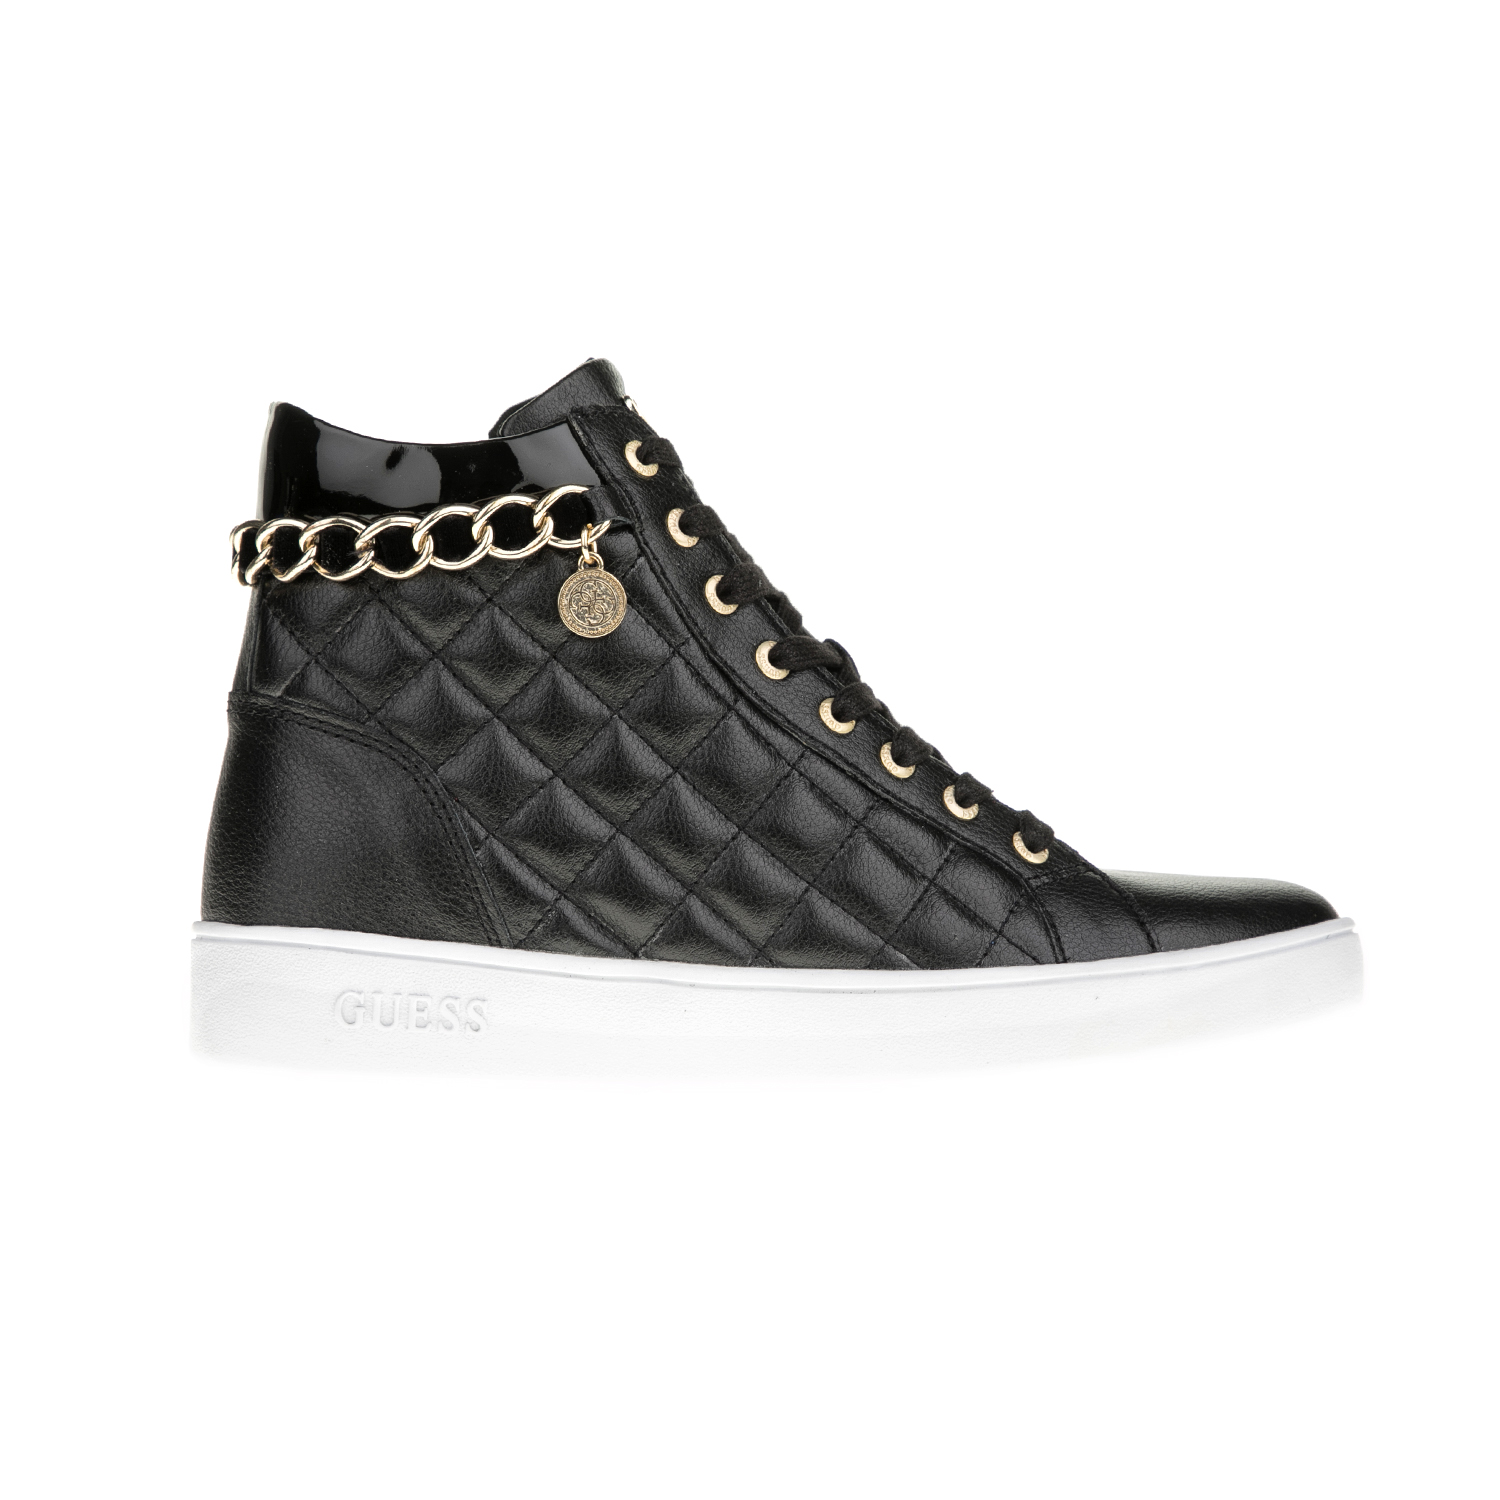 GUESS – Γυναικεία sneakers GUESS GERTA μαύρα